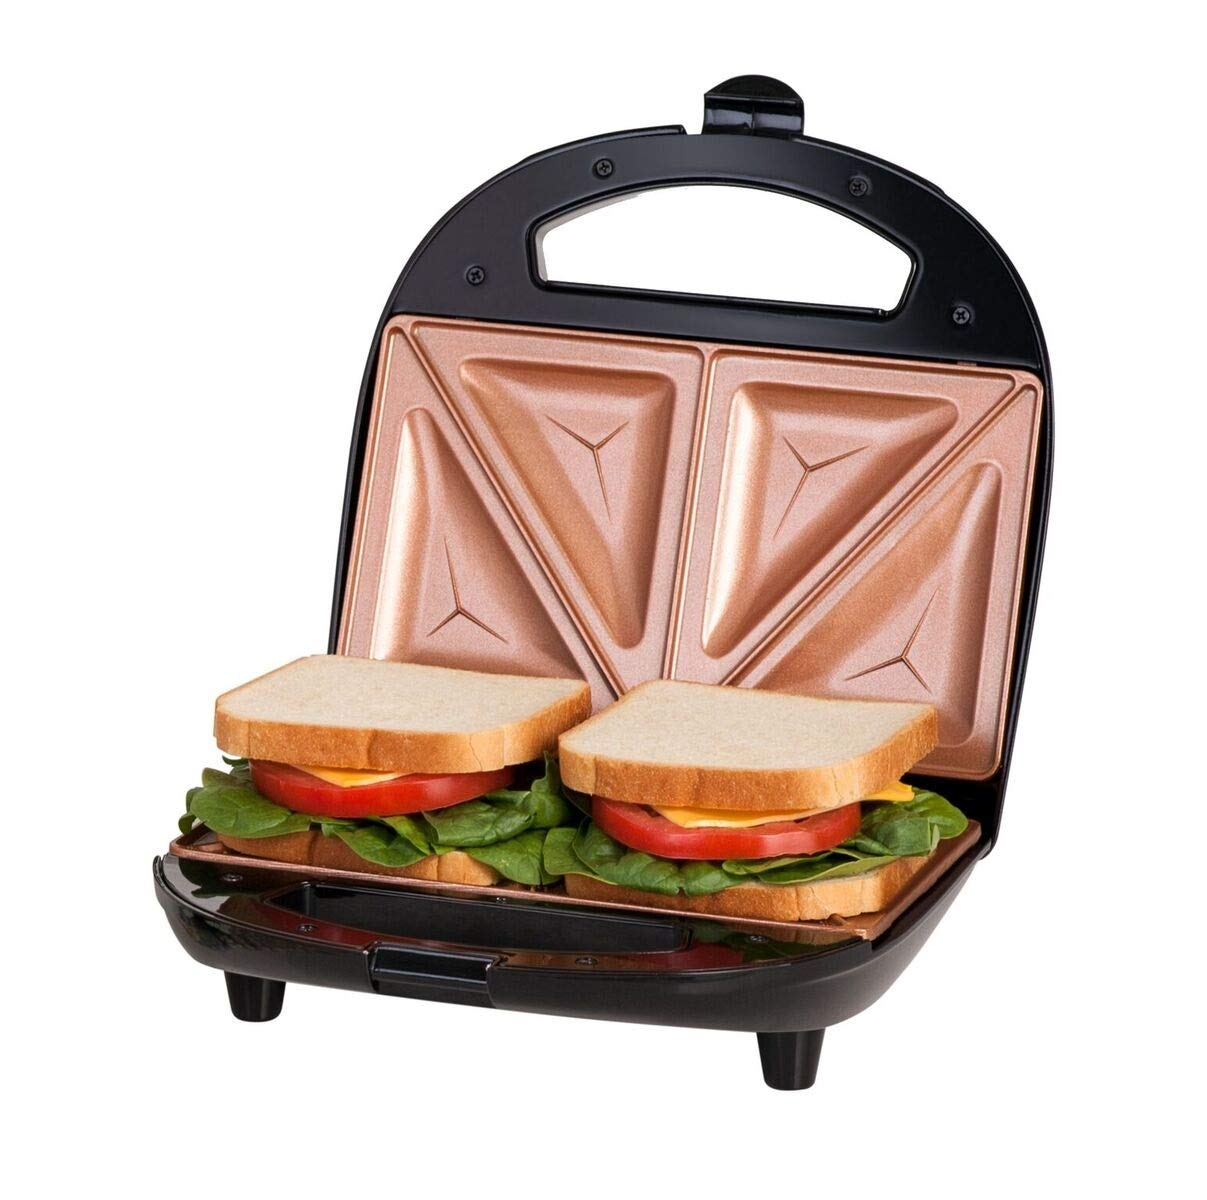 Gotham Steel Sandwich Maker, Toaster and Electric Panini Grill with Ultra Nonstick Copper Surface - Makes 2 Sandwiches in Minutes with Virtually No Clean Up, with Easy Cut Edges and Indicator Lights by GOTHAM STEEL